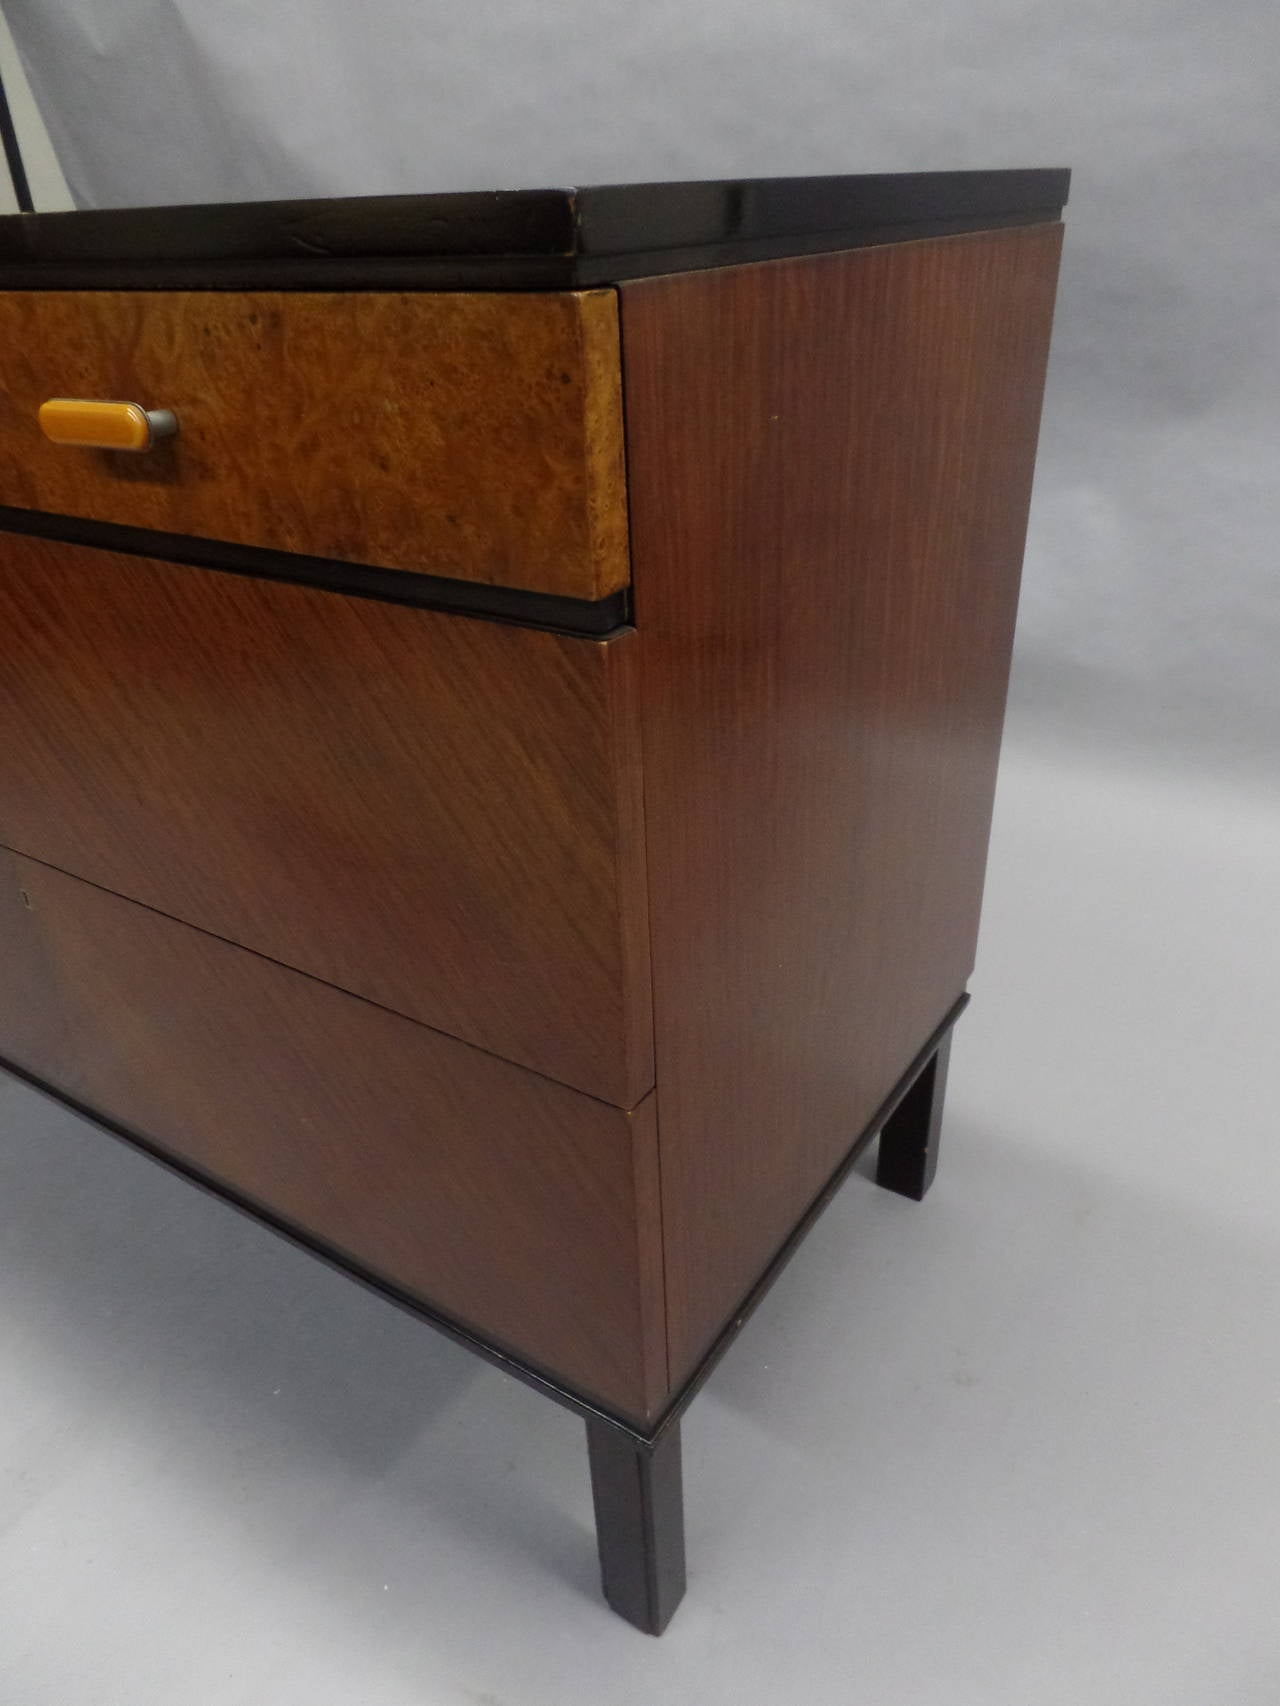 Swedish Mid-Century Modern Chest of Drawers / Commode by Axel Einar Hjort, 1930 6